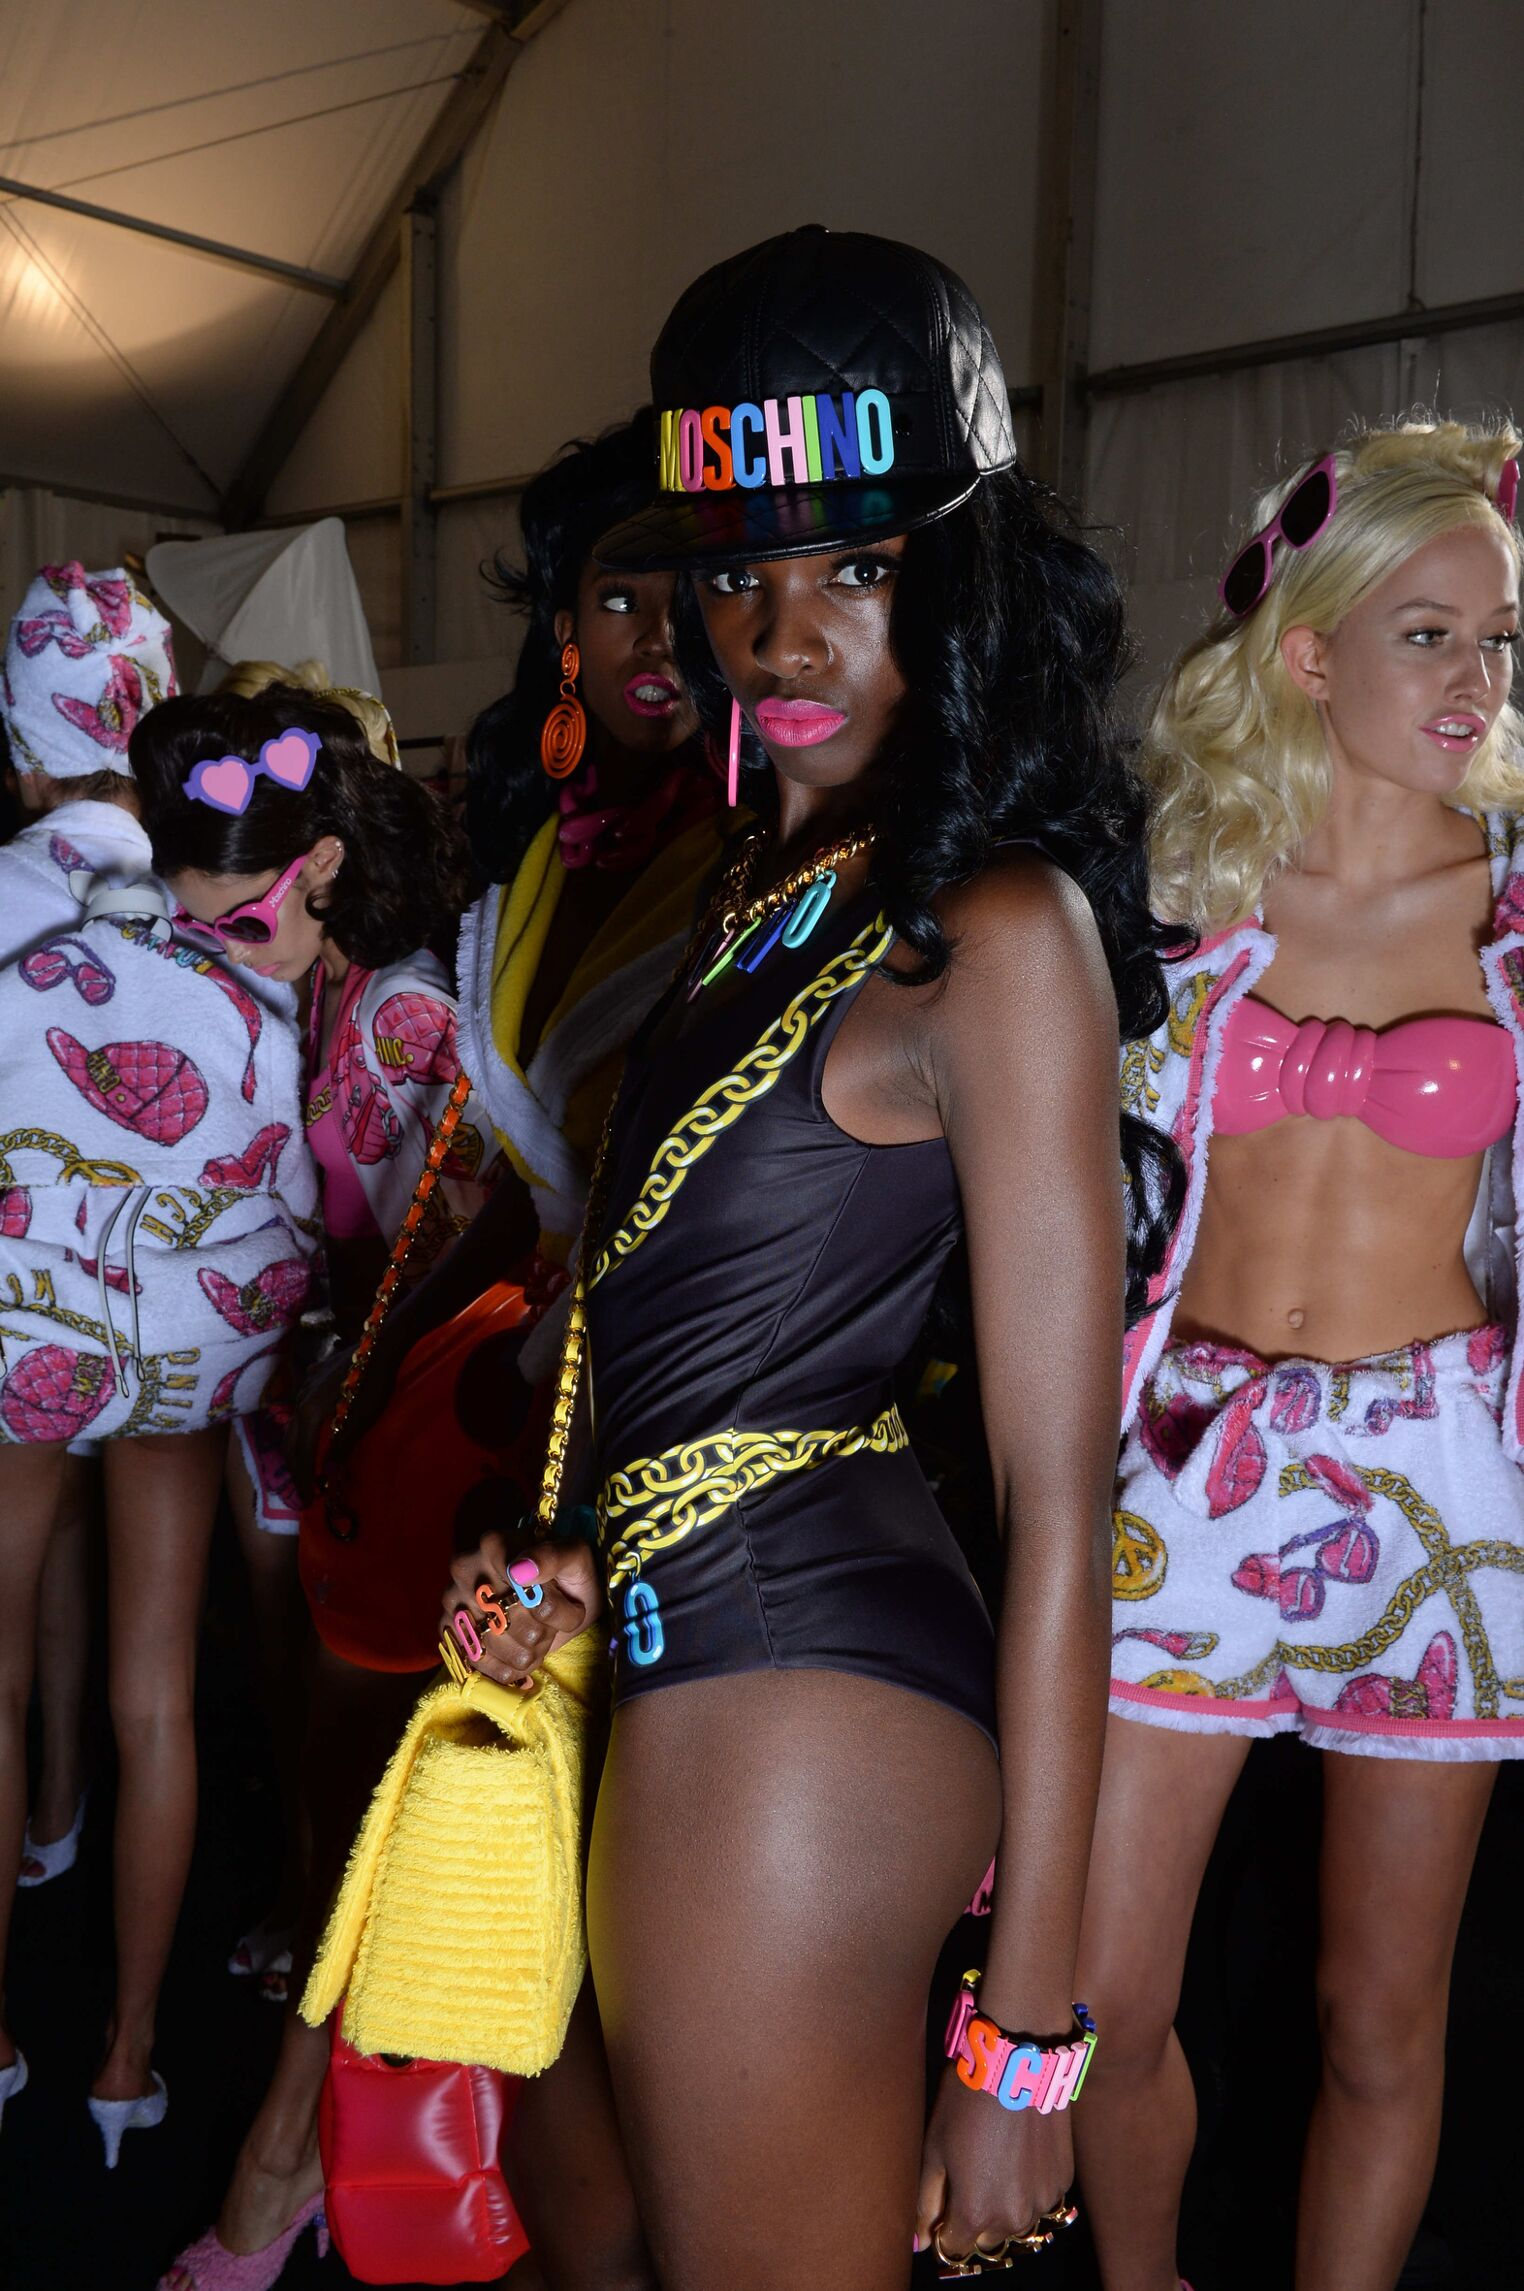 Backstage Moschino Woman Model Spring 2015